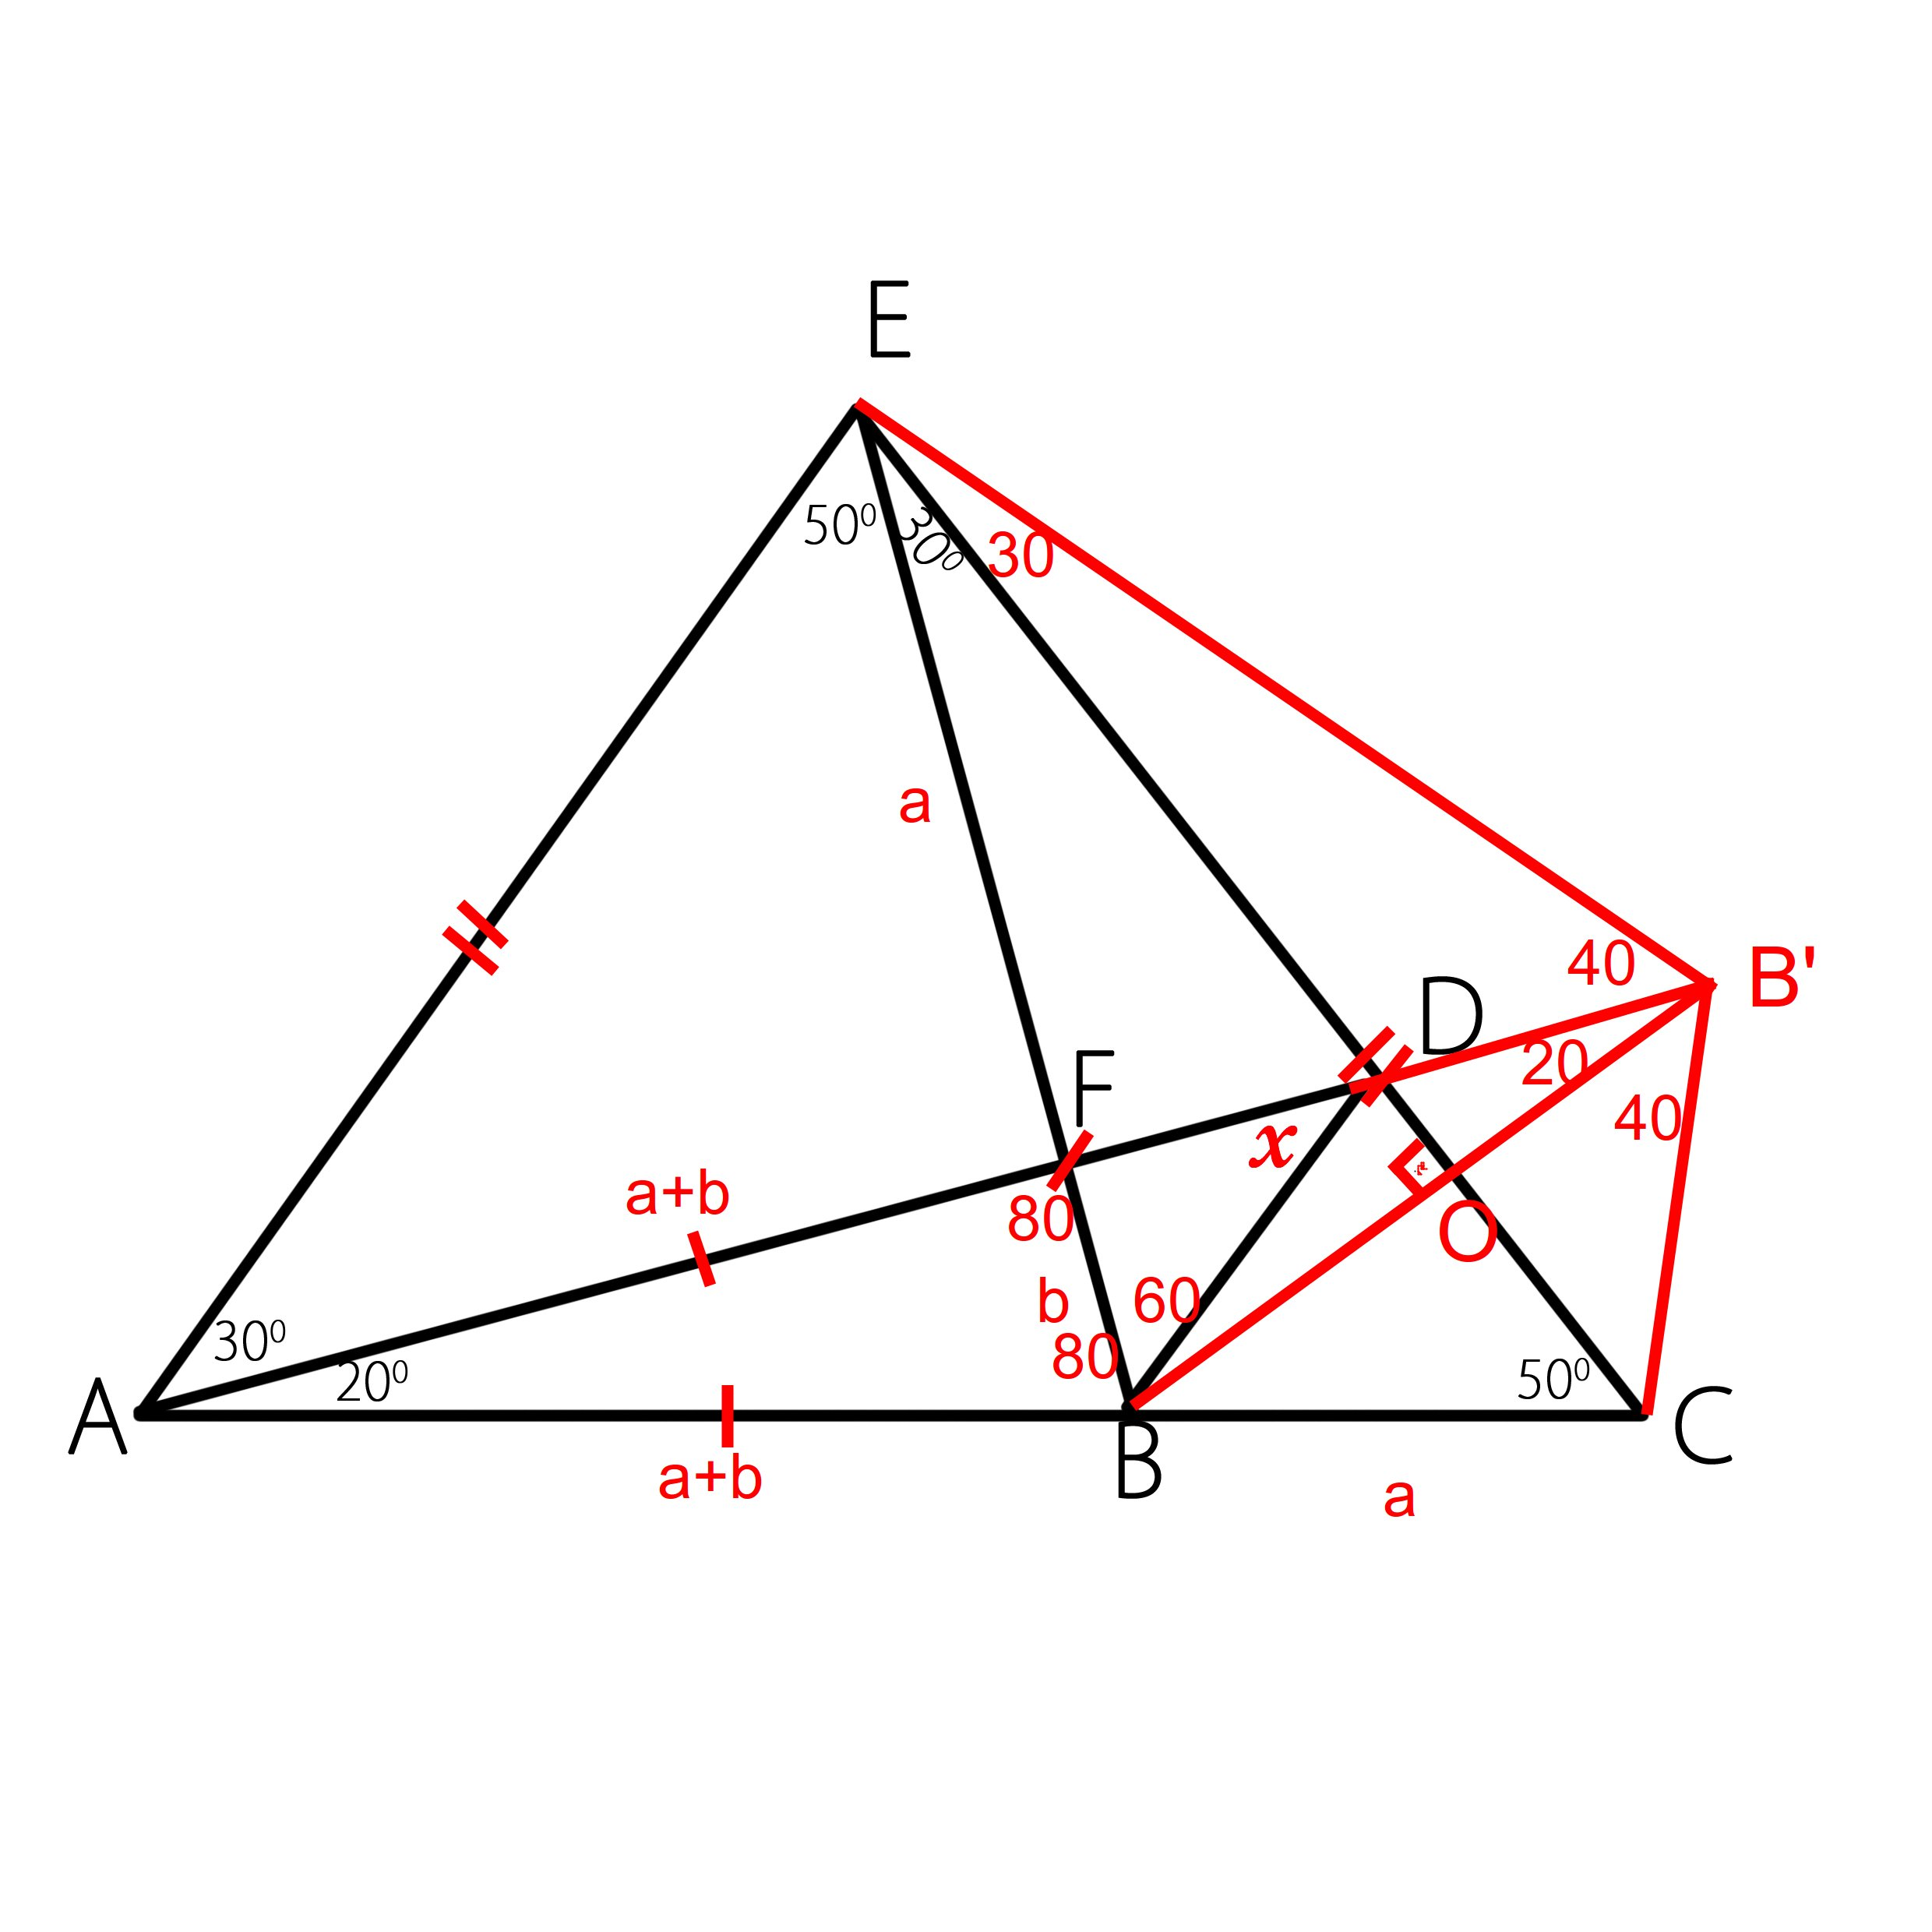 Euclidean Geometry: Find the value of angle $x$ in a